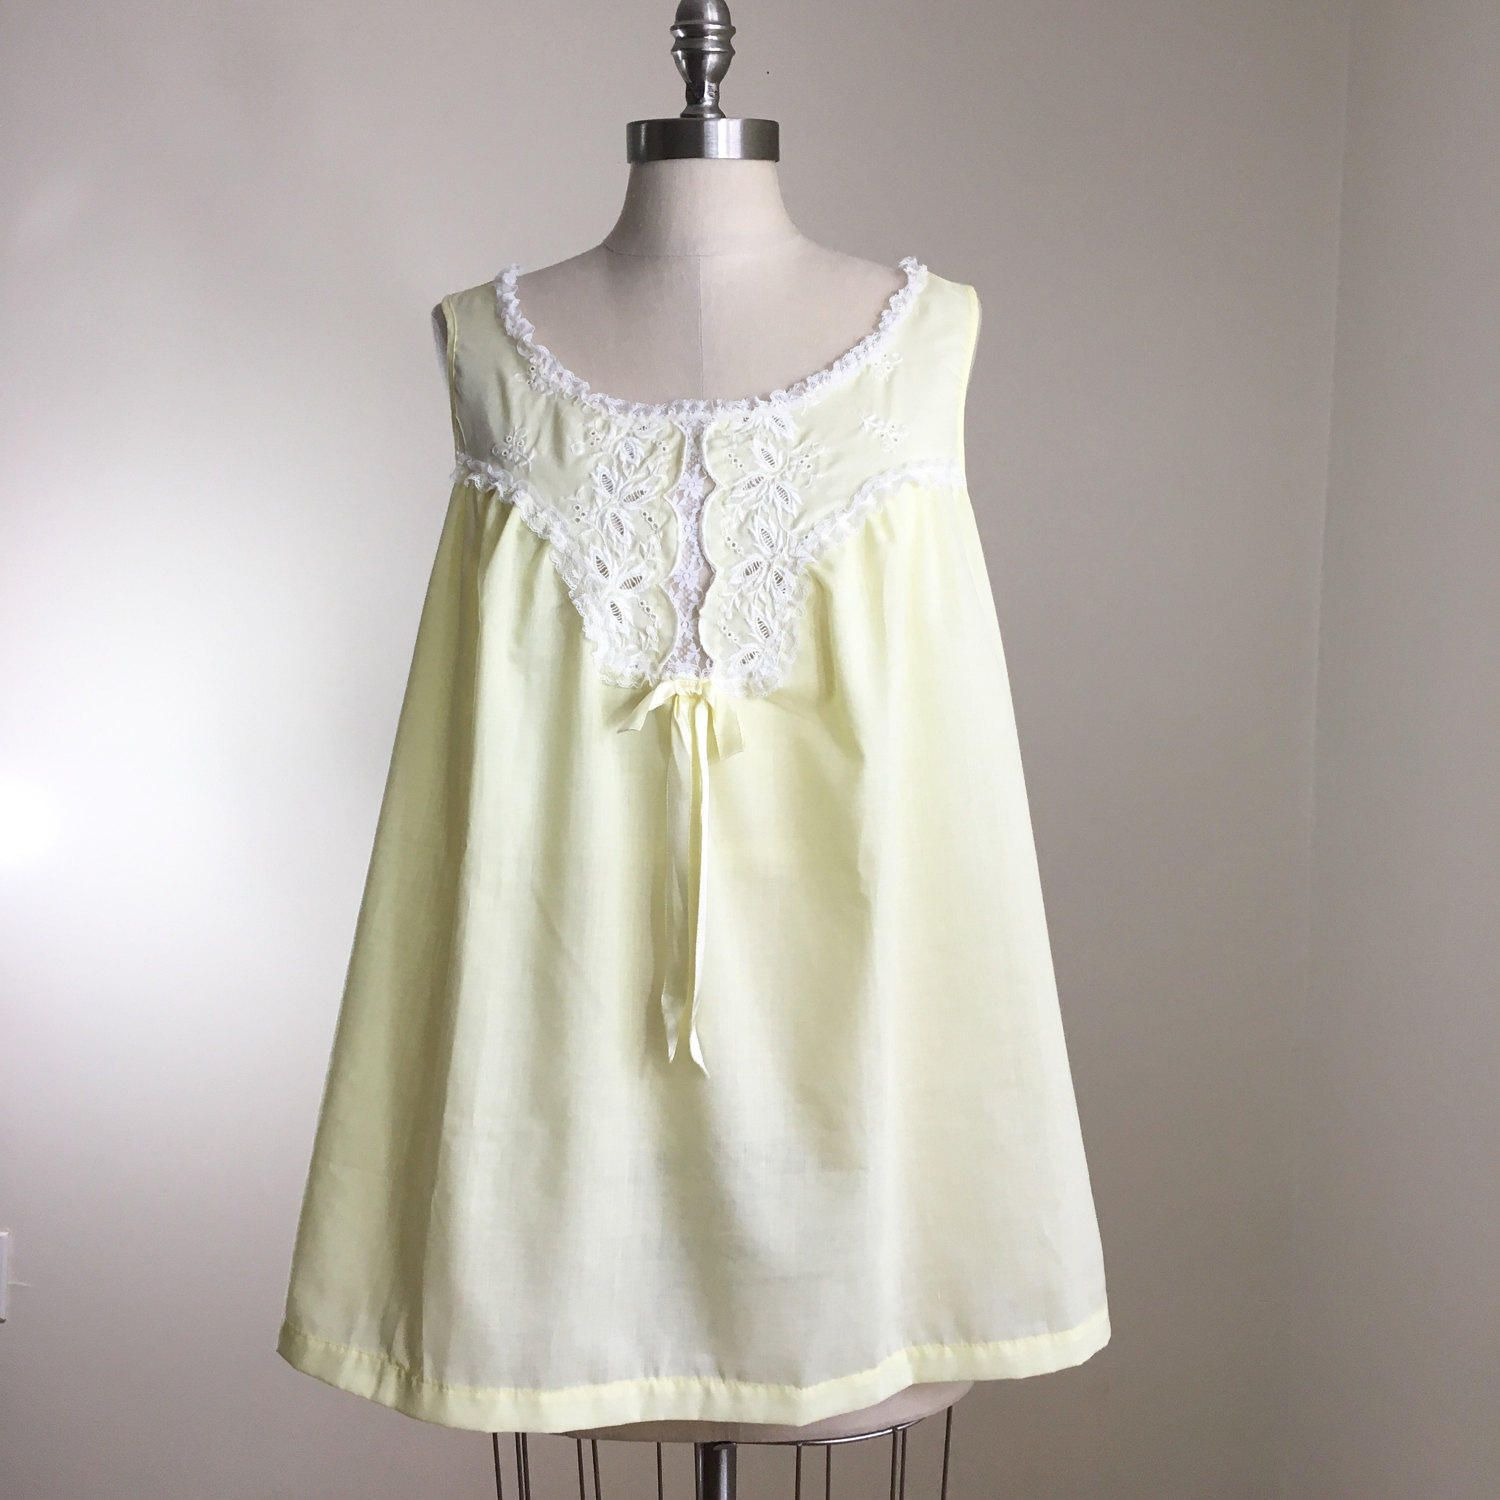 9b0acde1fa 70s Pastel Yellow Eyelet Lace Cotton A-line Babydoll Nightie